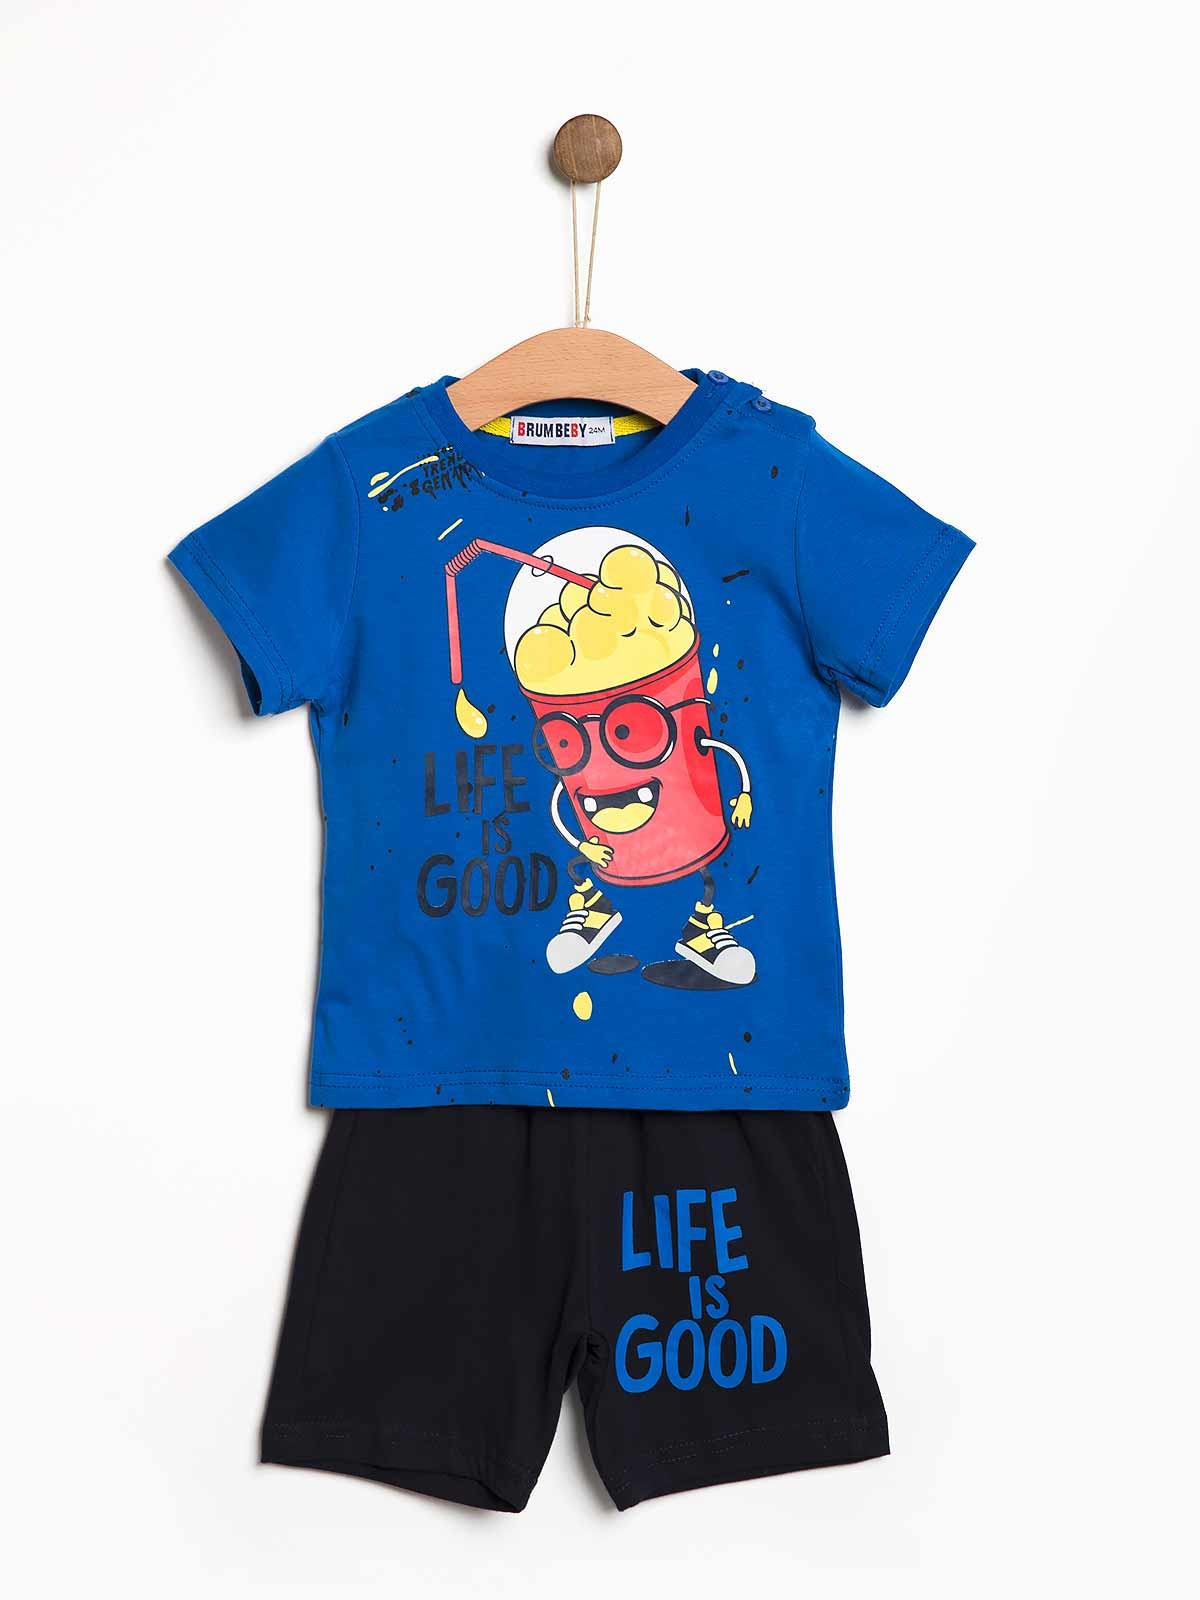 Conjunto calção t-shirt Life is Good